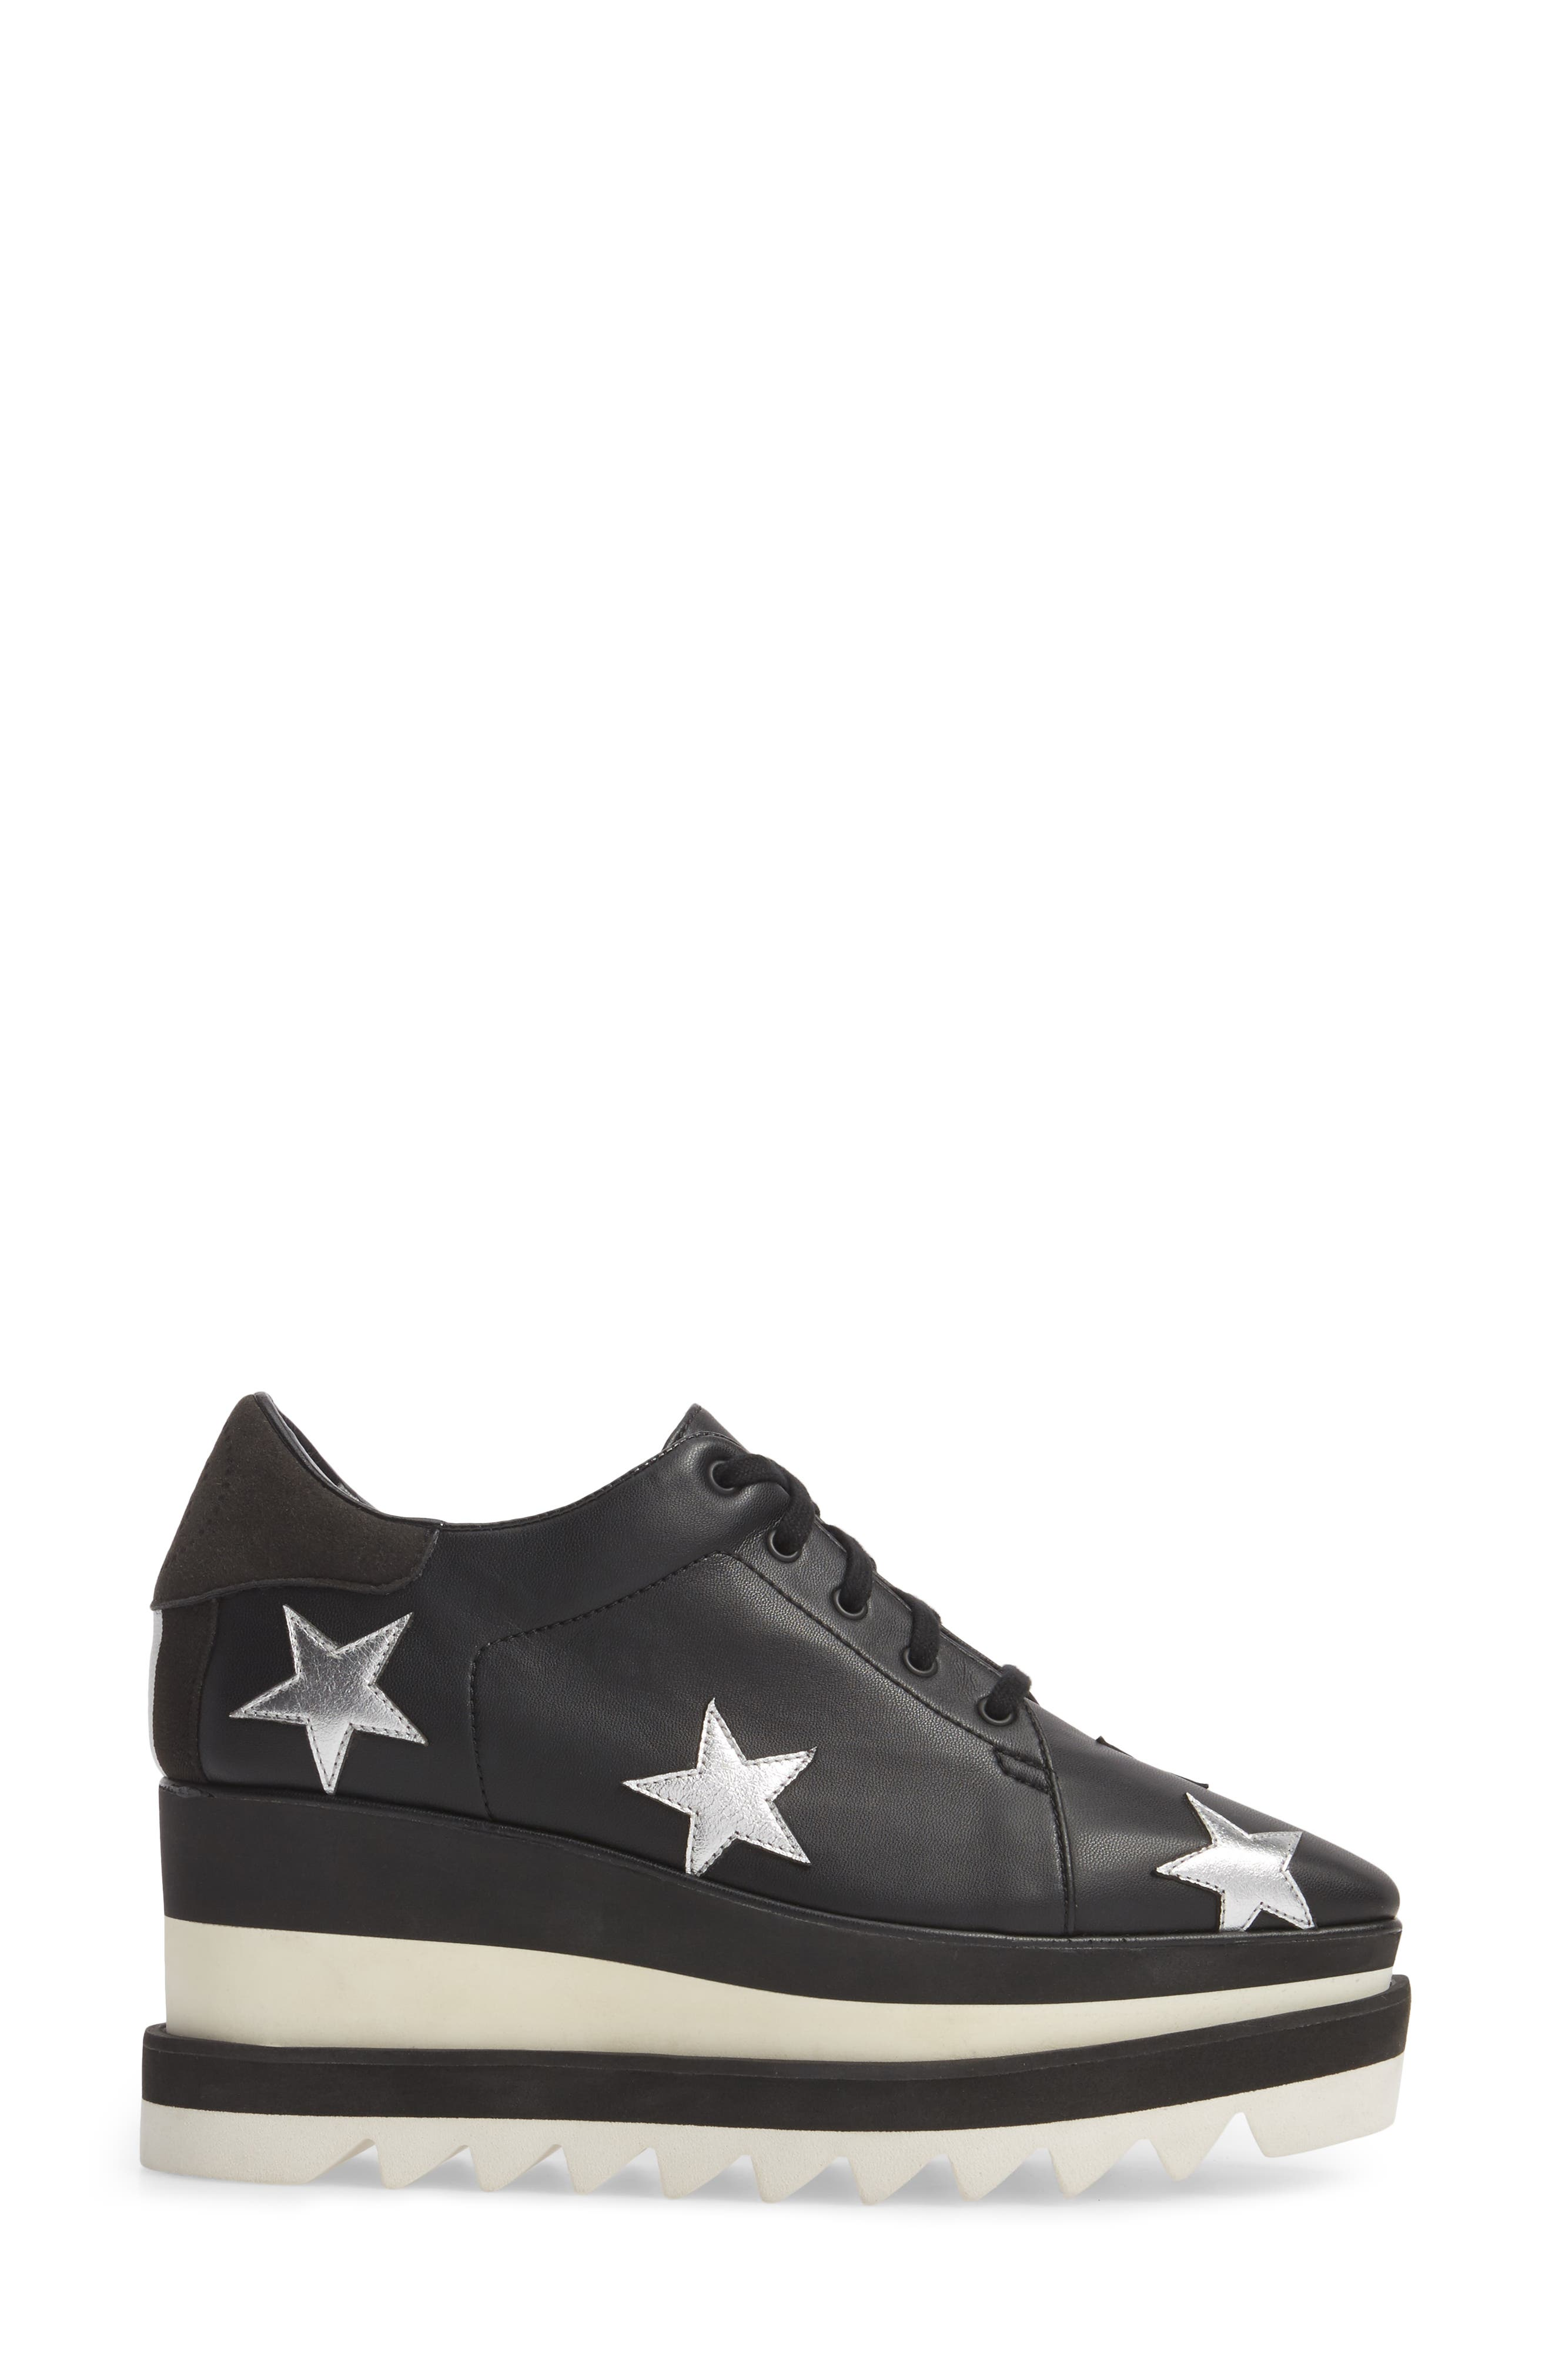 Alternate Image 3  - Stella McCartney Elyse Platform Sneaker (Women)